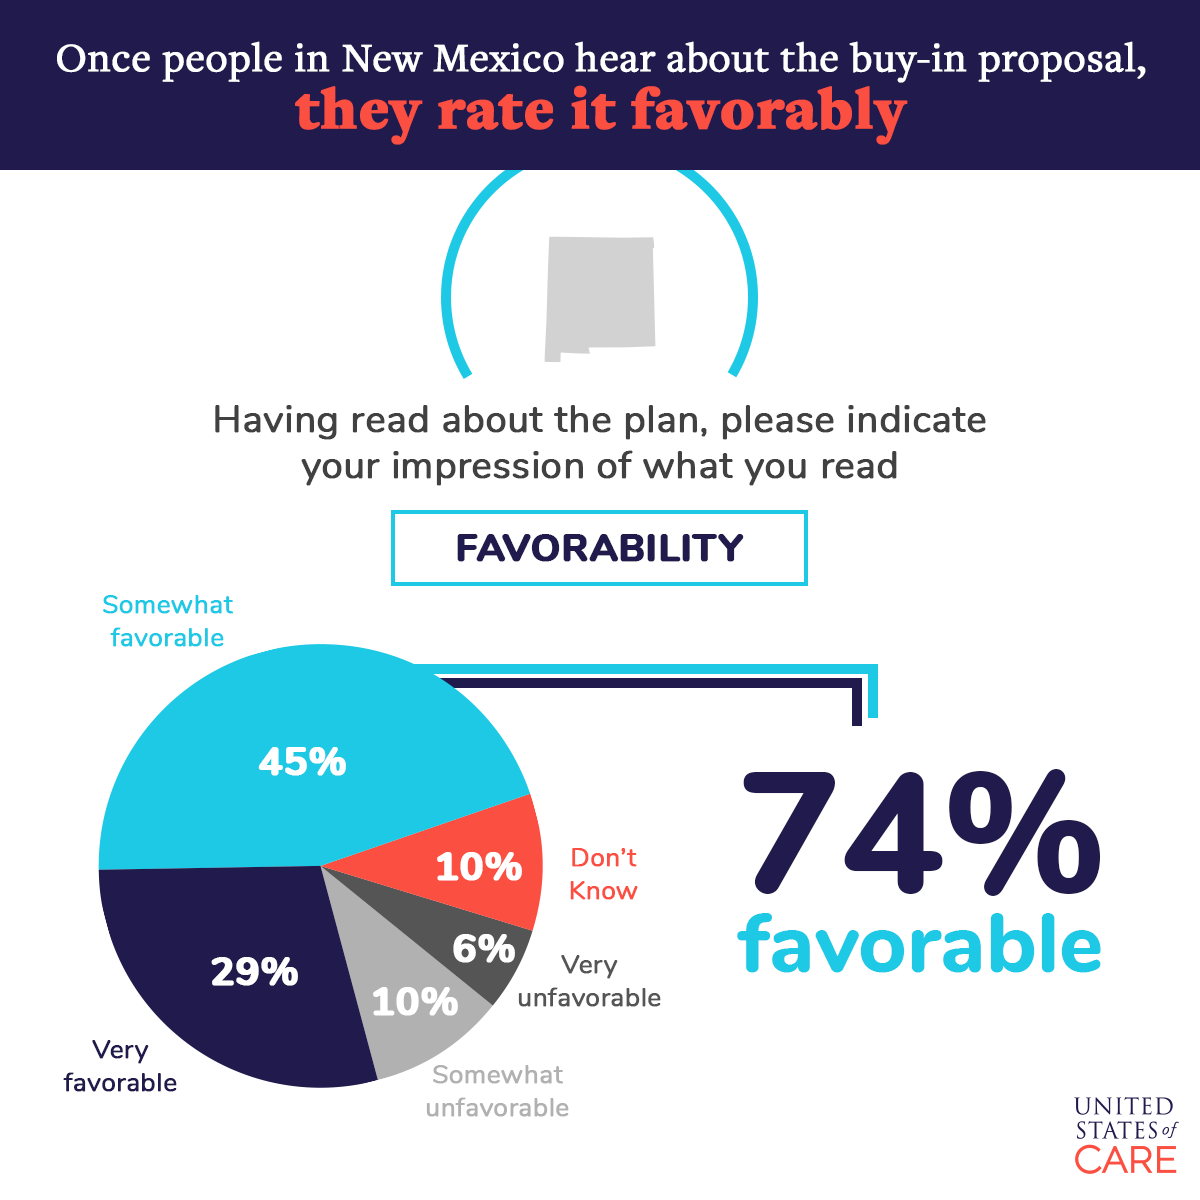 favorability.png